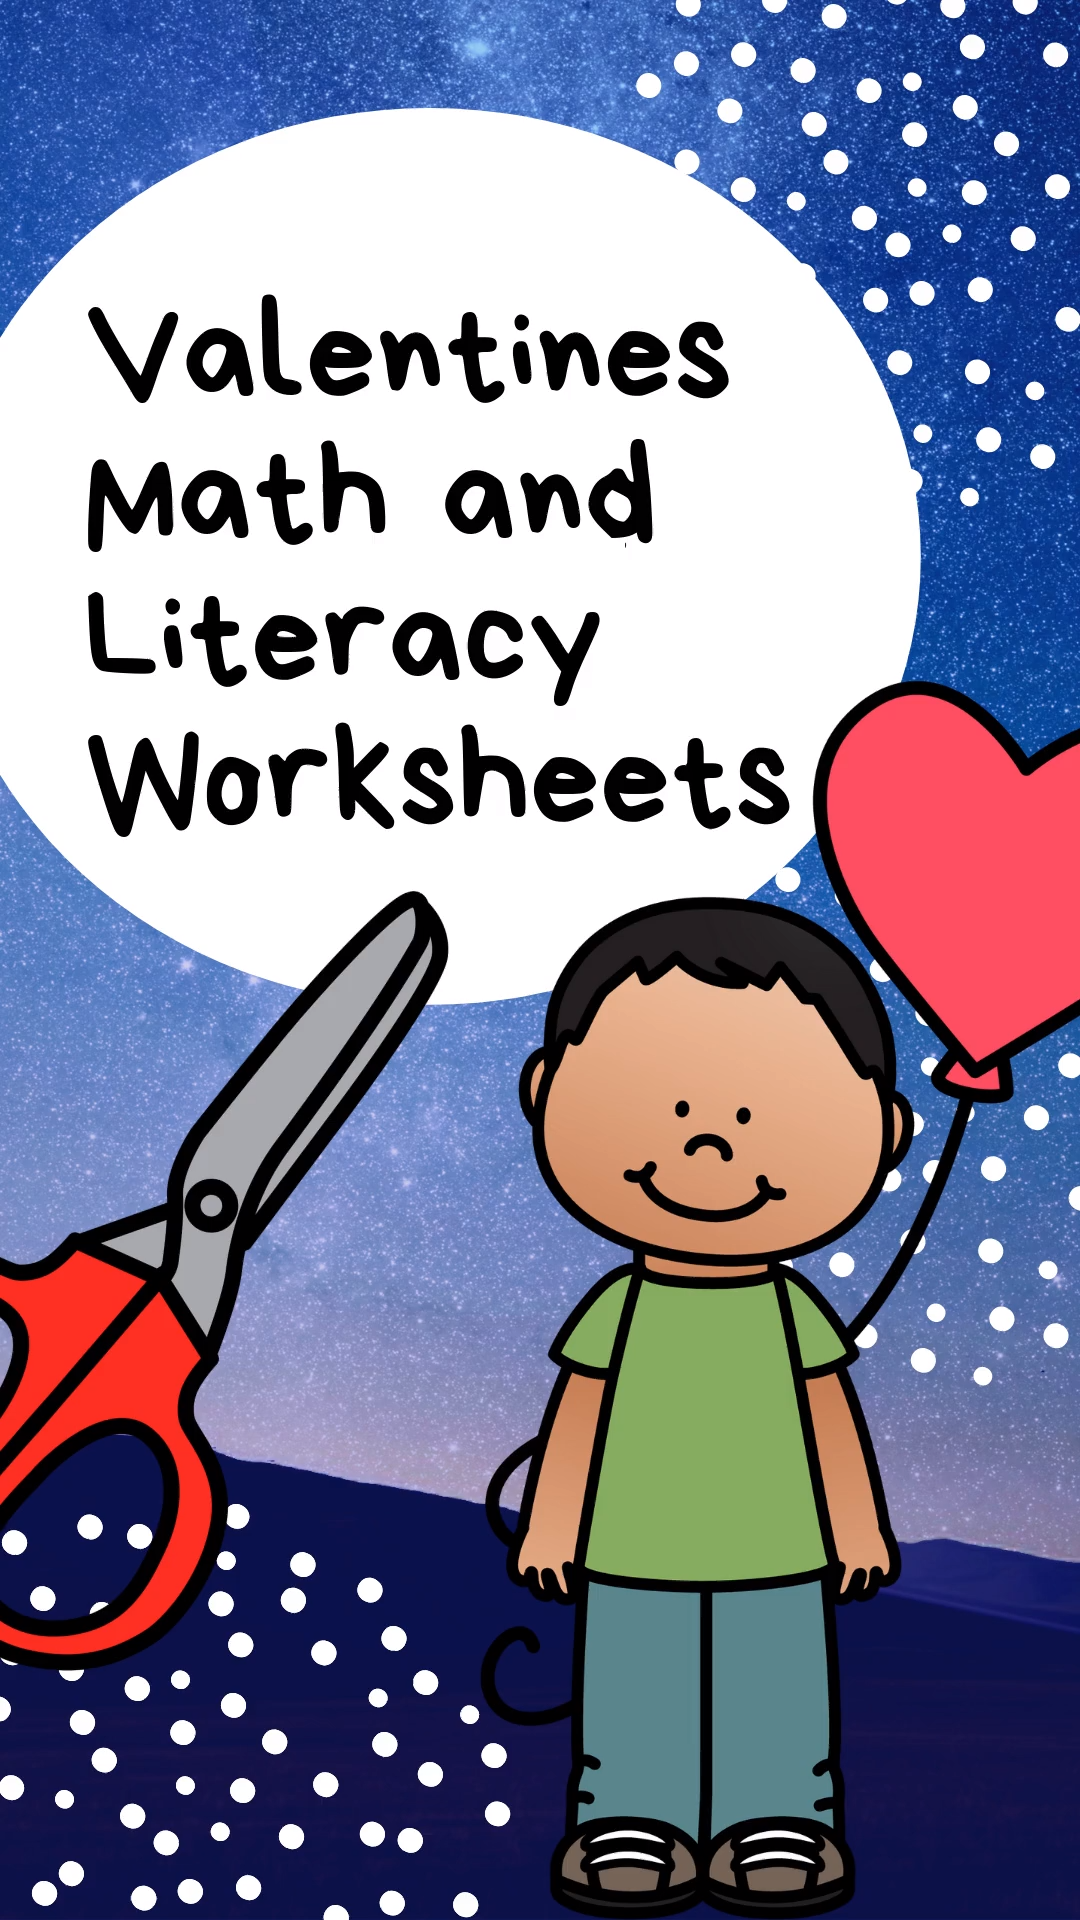 Valentines Math And Literacy Worksheets For Kindergarten